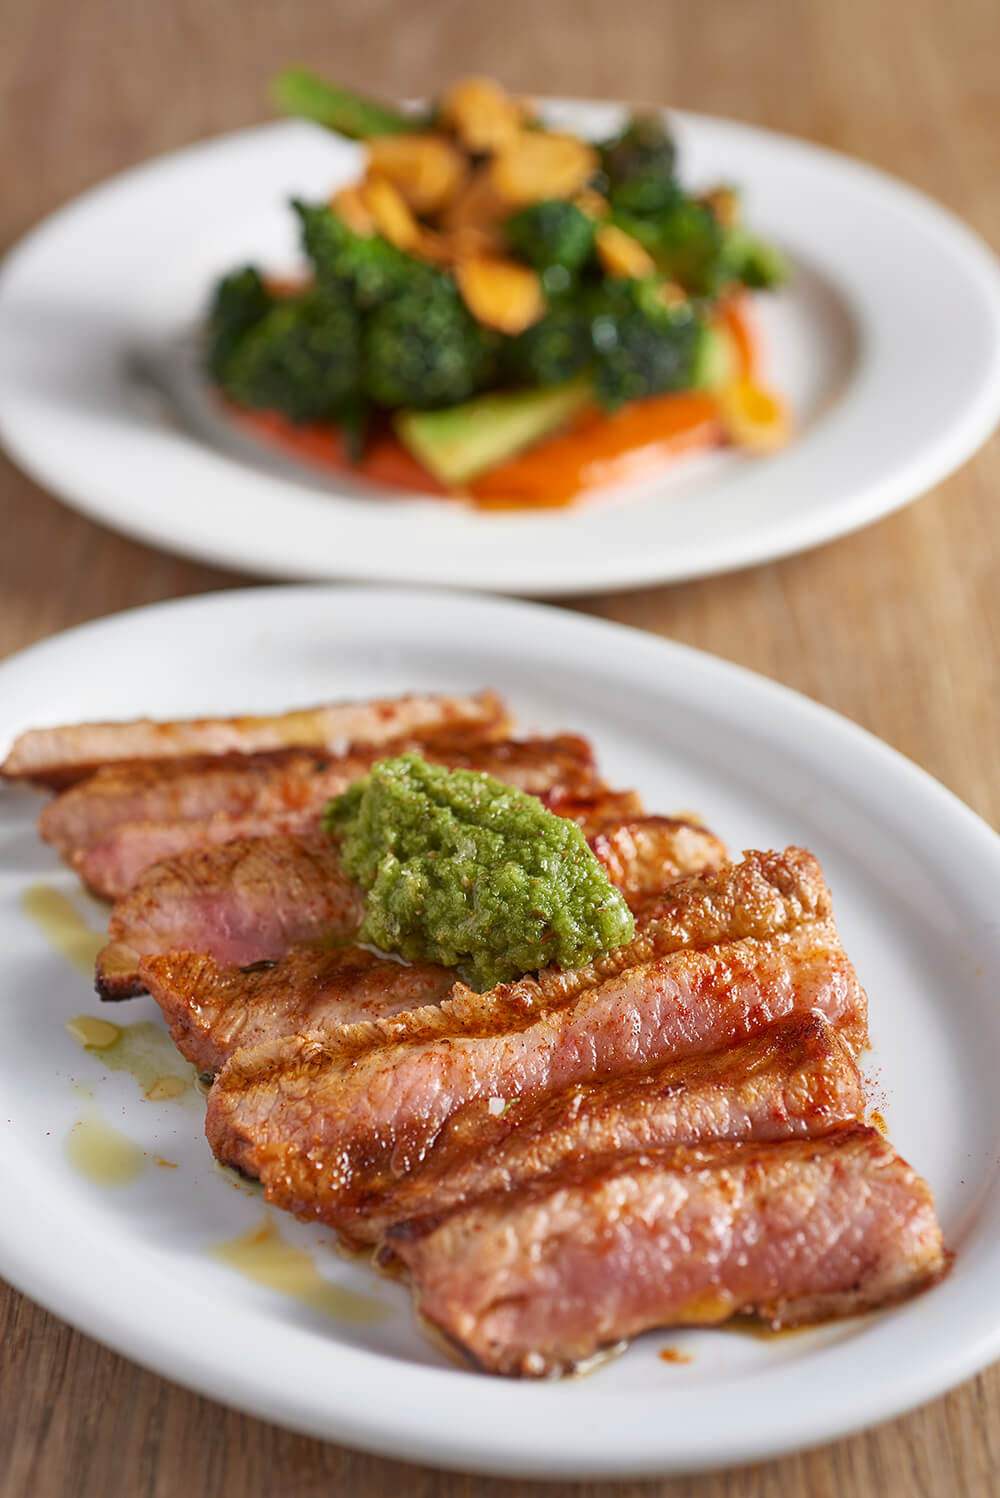 Presa Iberica 'seared pork' with mojo verde.